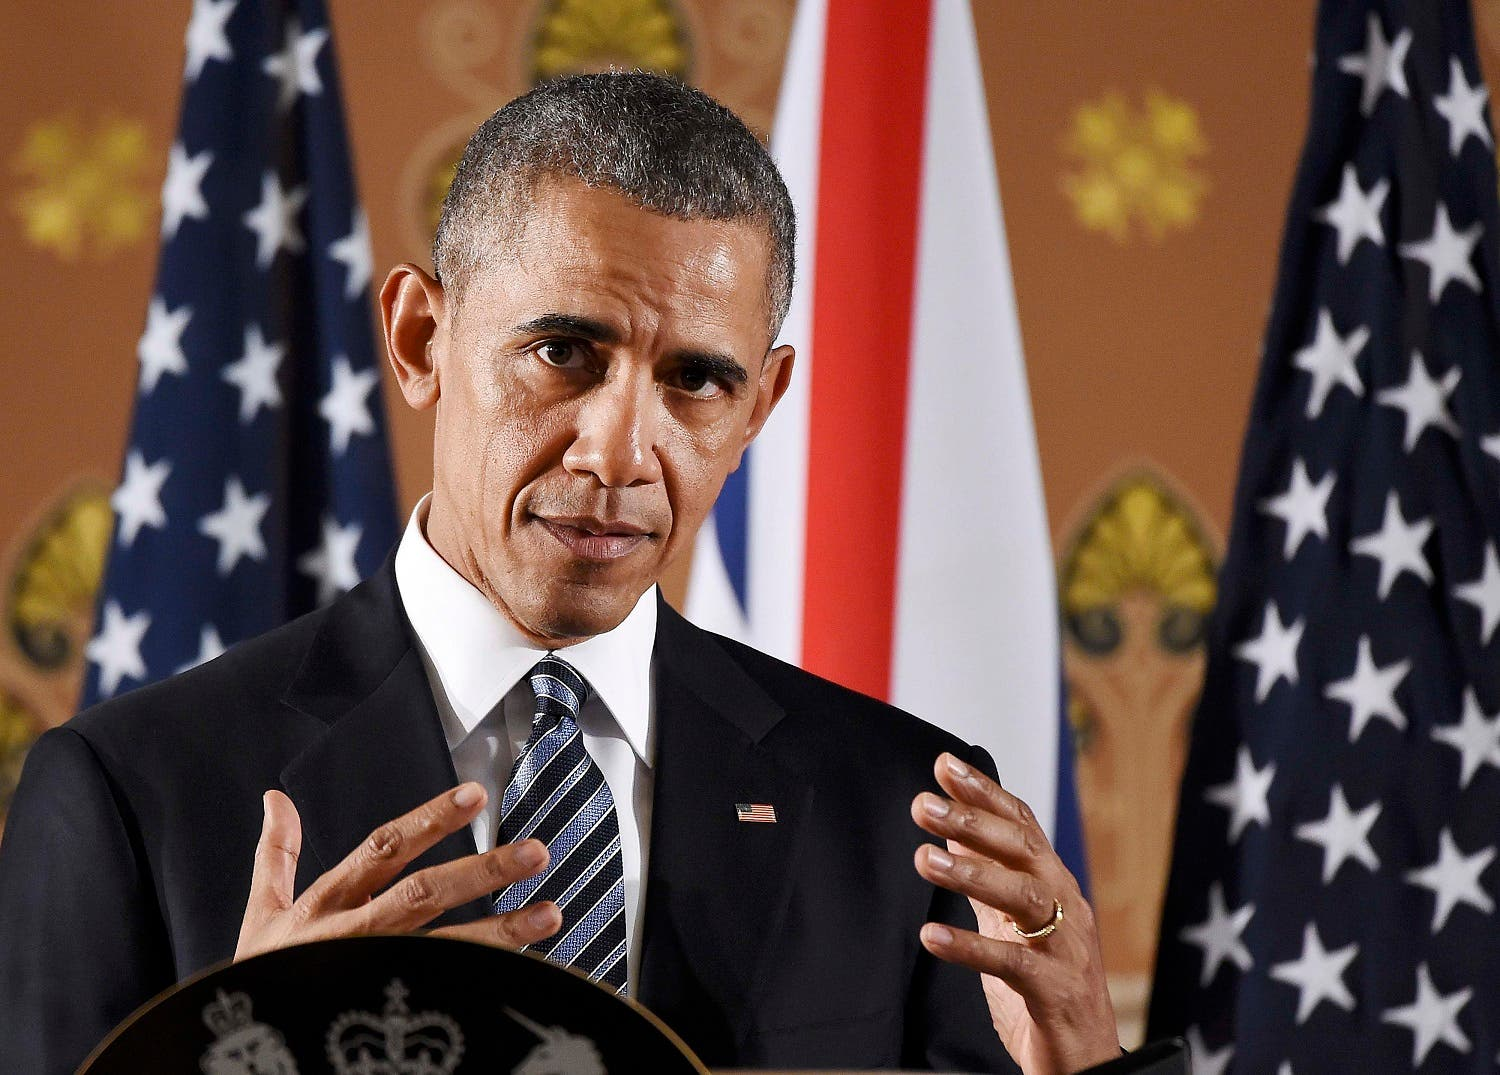 US President Barack Obama speaks during a press conference at the Foreign and Commonwealth Office in central London with Britain's Prime Minister David Cameron (unseen) following a meeting at Downing Street, in London, Britain April, 22, 2016. REUTERS/Andy Rain/Pool